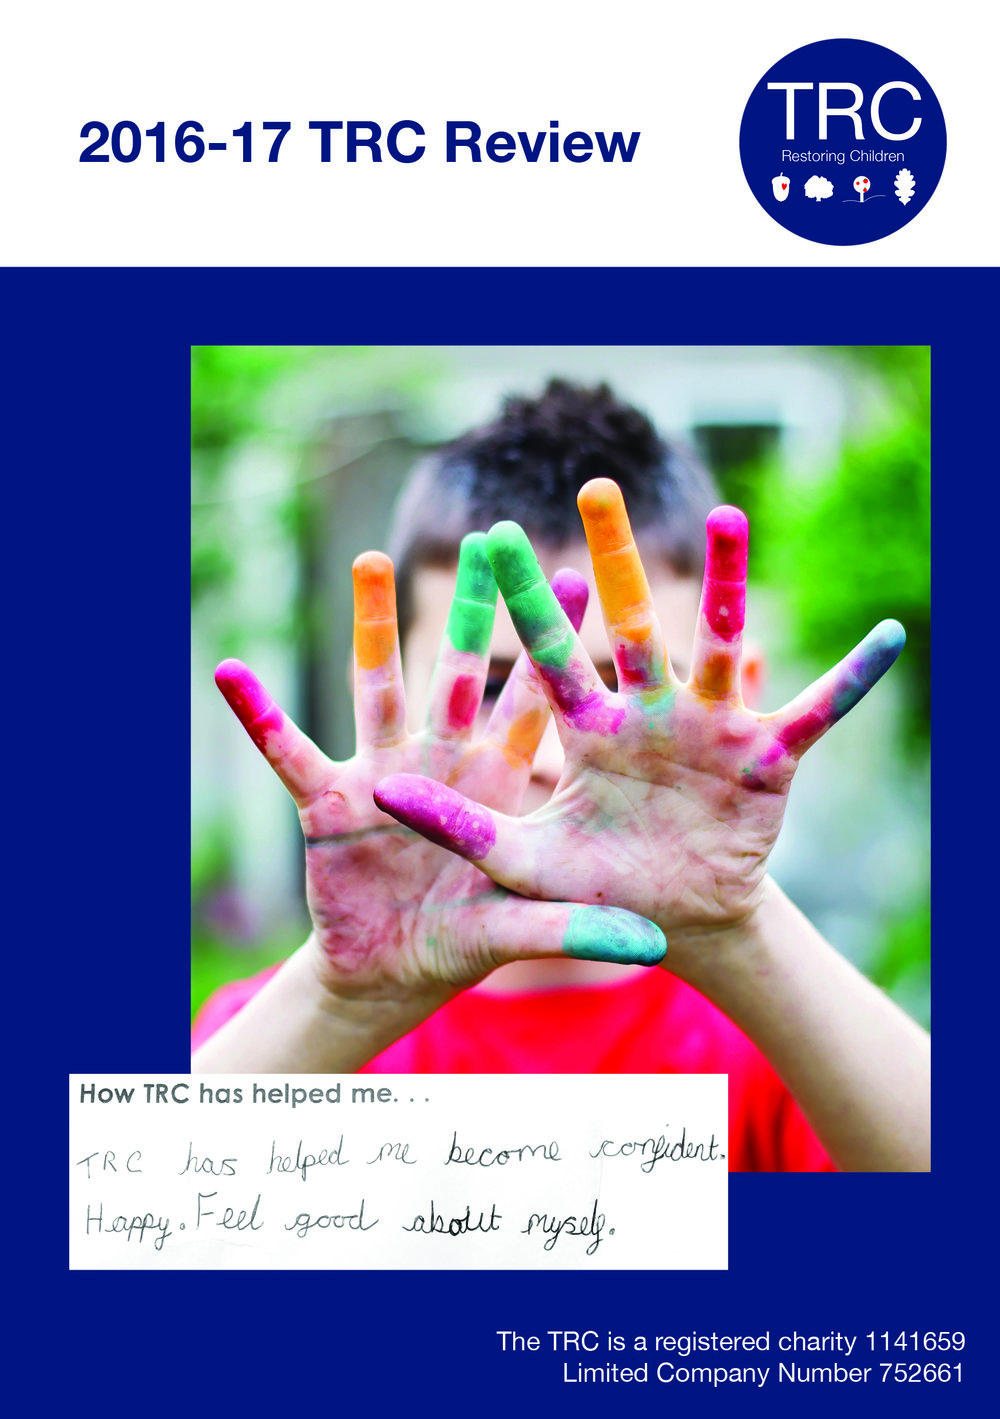 trc review 2016_17_front_cover.jpg